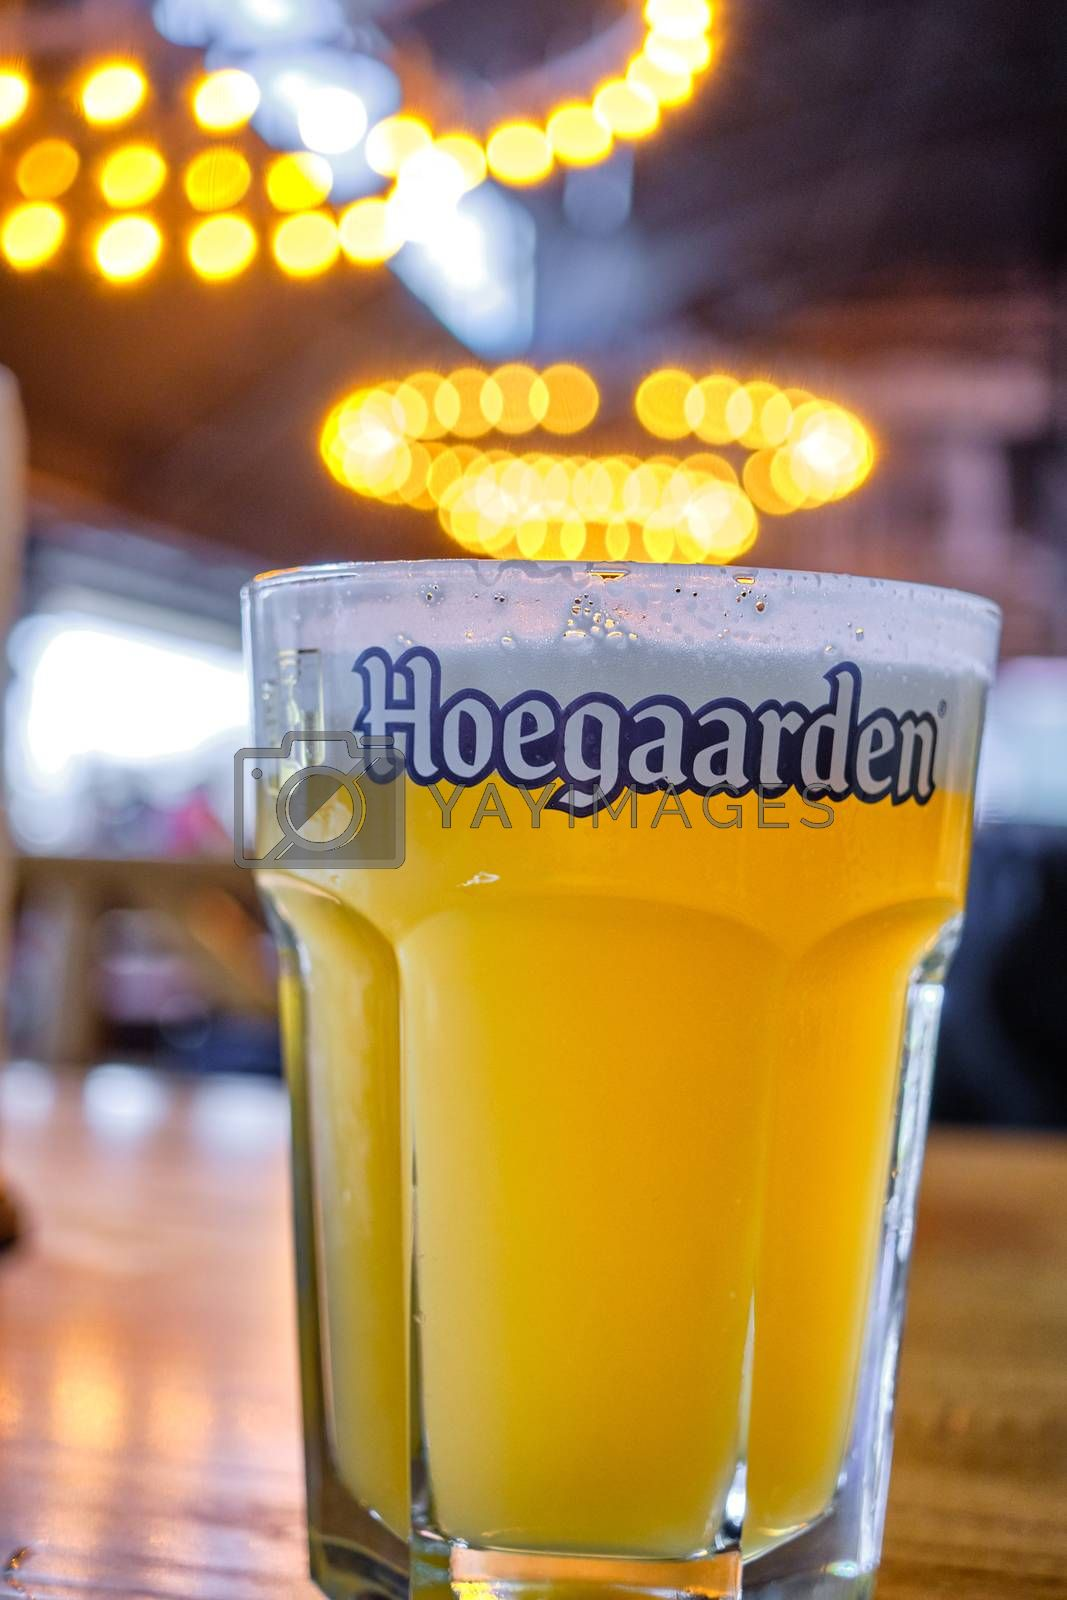 Belgrade / Serbia - November 17, 2019: Cup of Hoegaarden Belgian wheat beer on a table in a bar